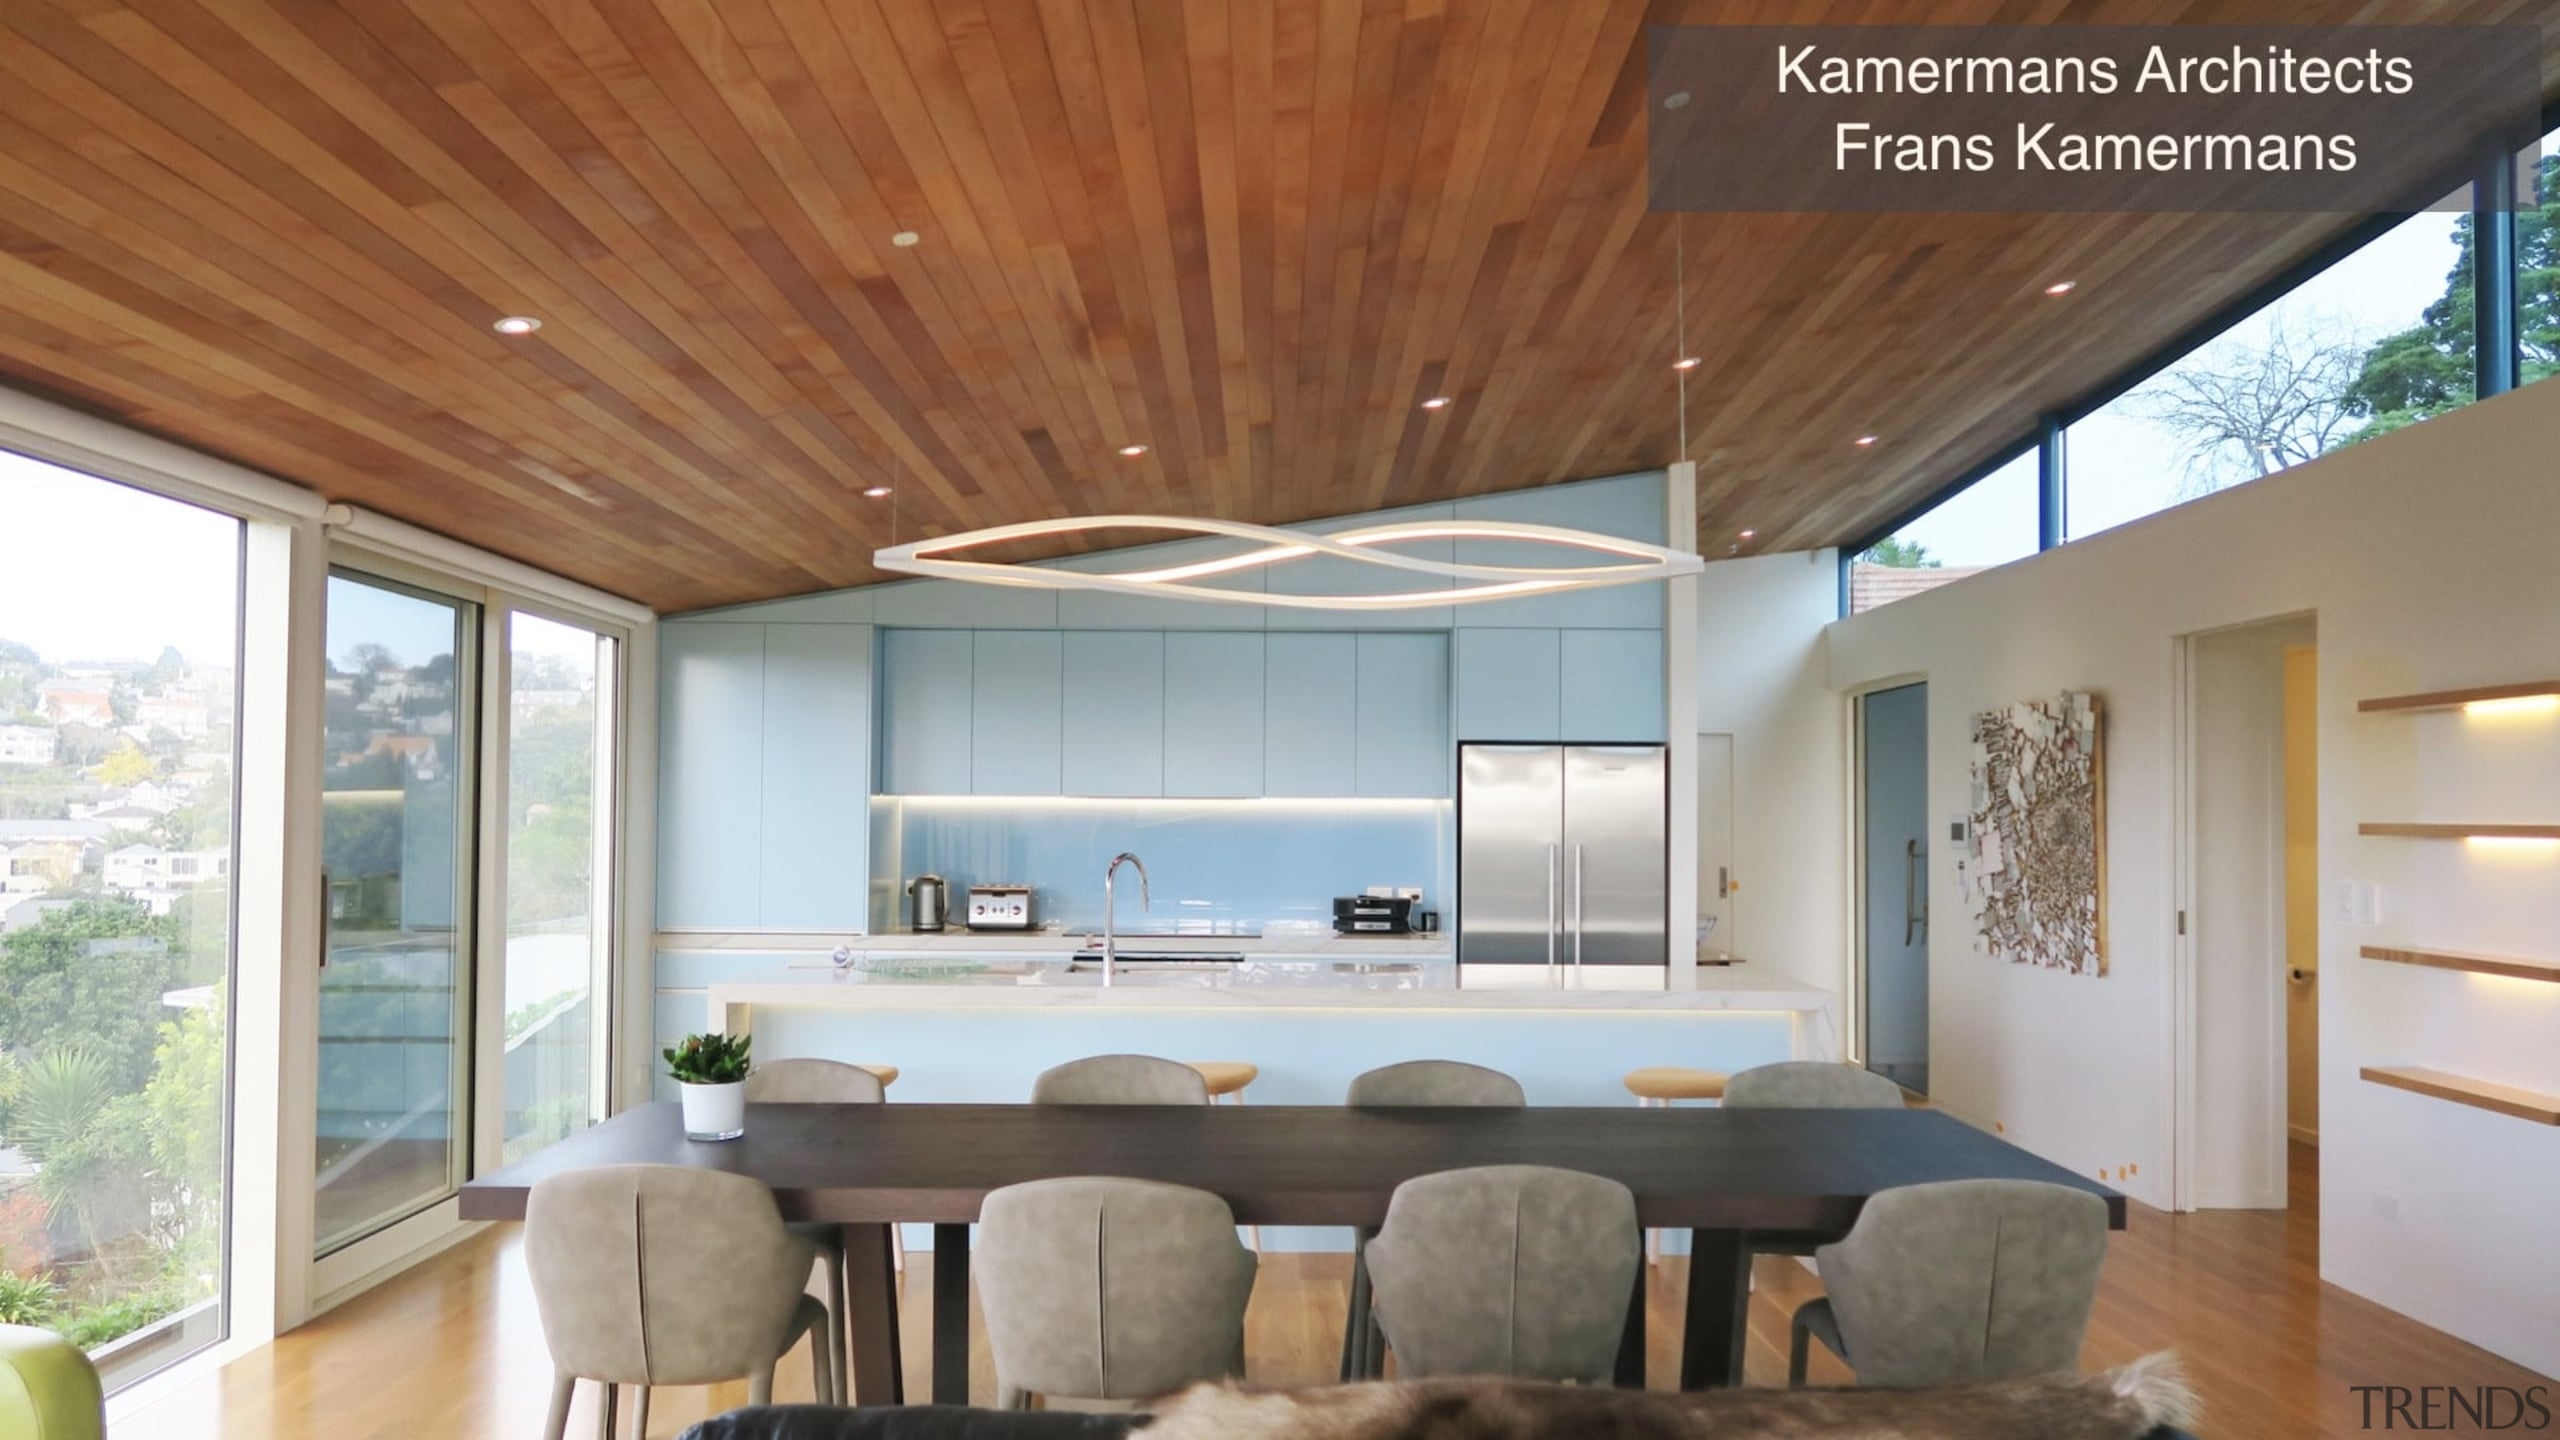 Highly Commended – Kamermans Architects – Tida New architecture, ceiling, daylighting, estate, home, house, interior design, living room, real estate, window, brown, gray